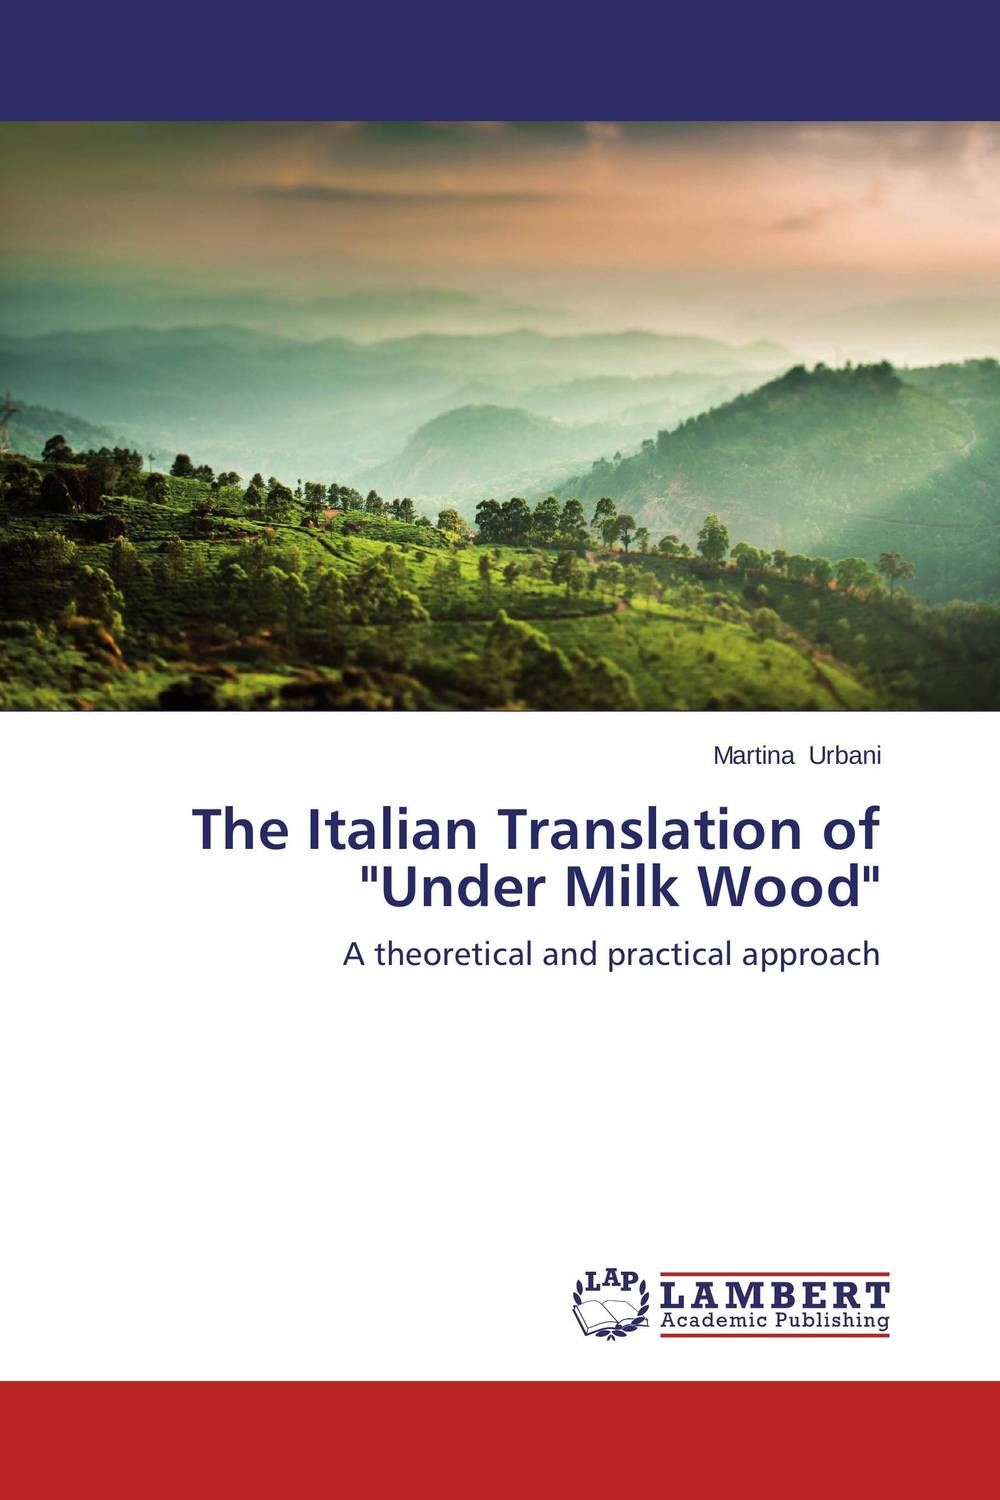 The Italian Translation of Under Milk Wood the translation of figurative language